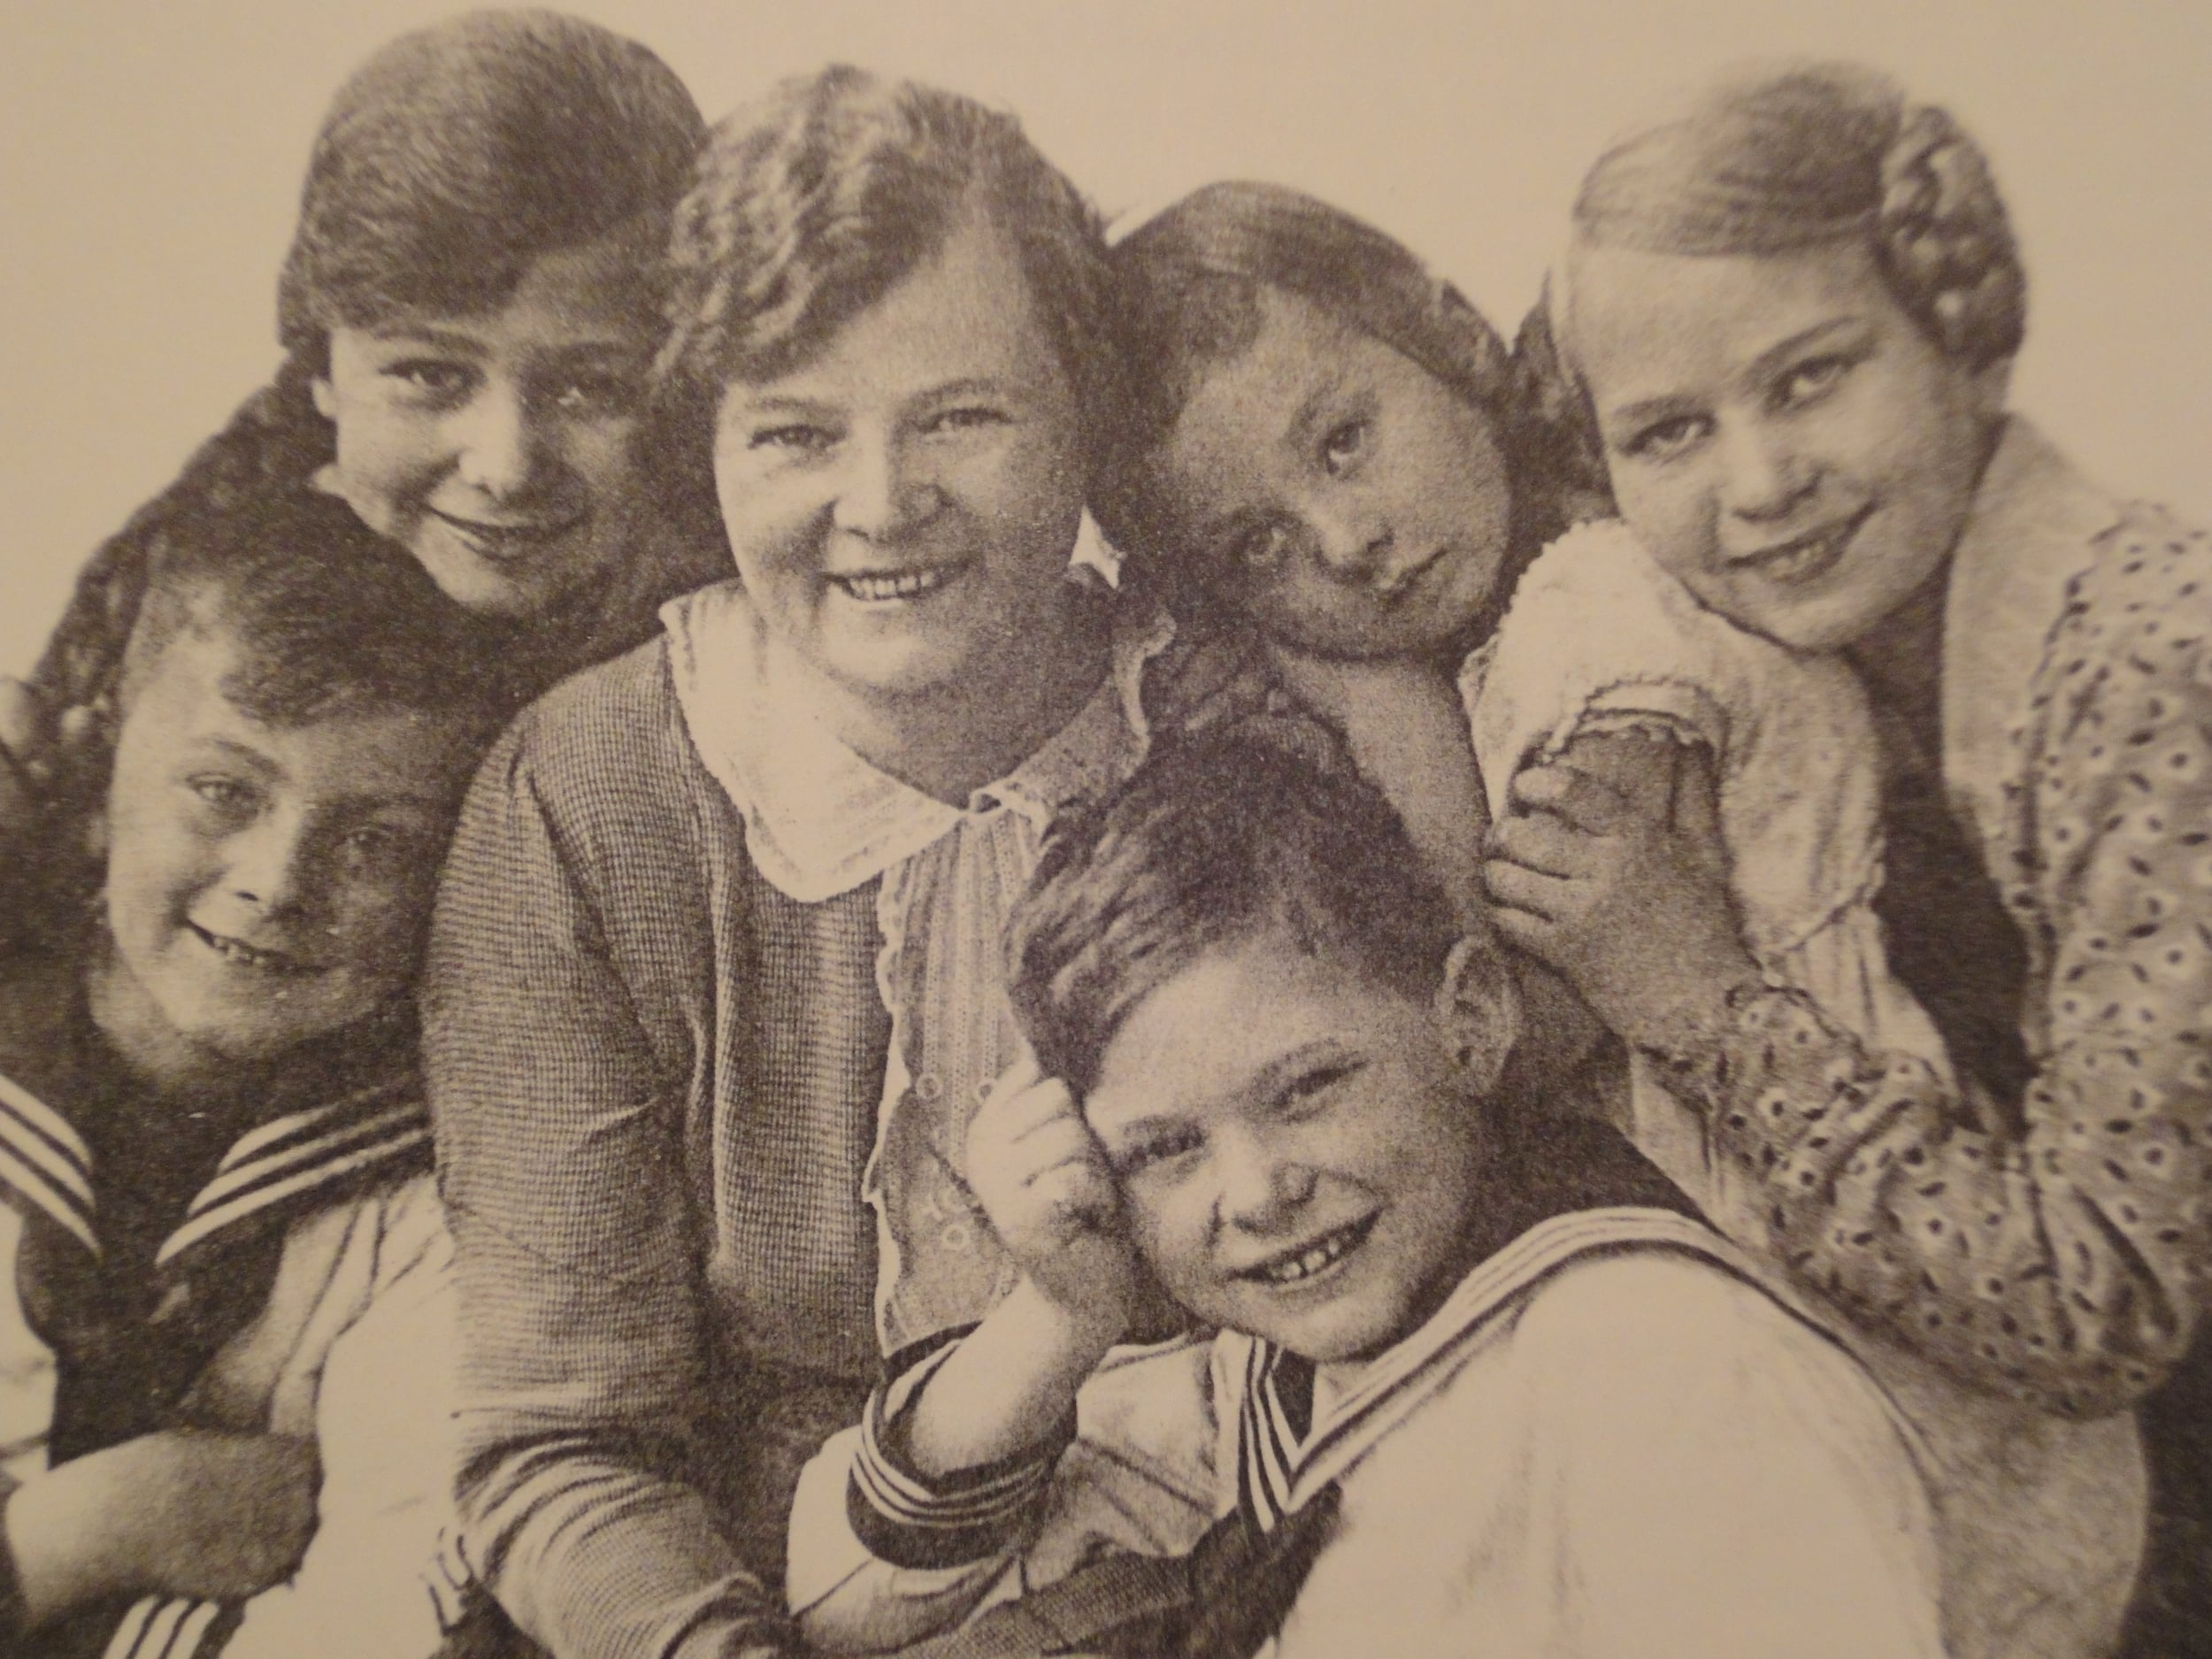 The Buettner Wobst children in happier days in 1930s. Rike is 2nd from right.